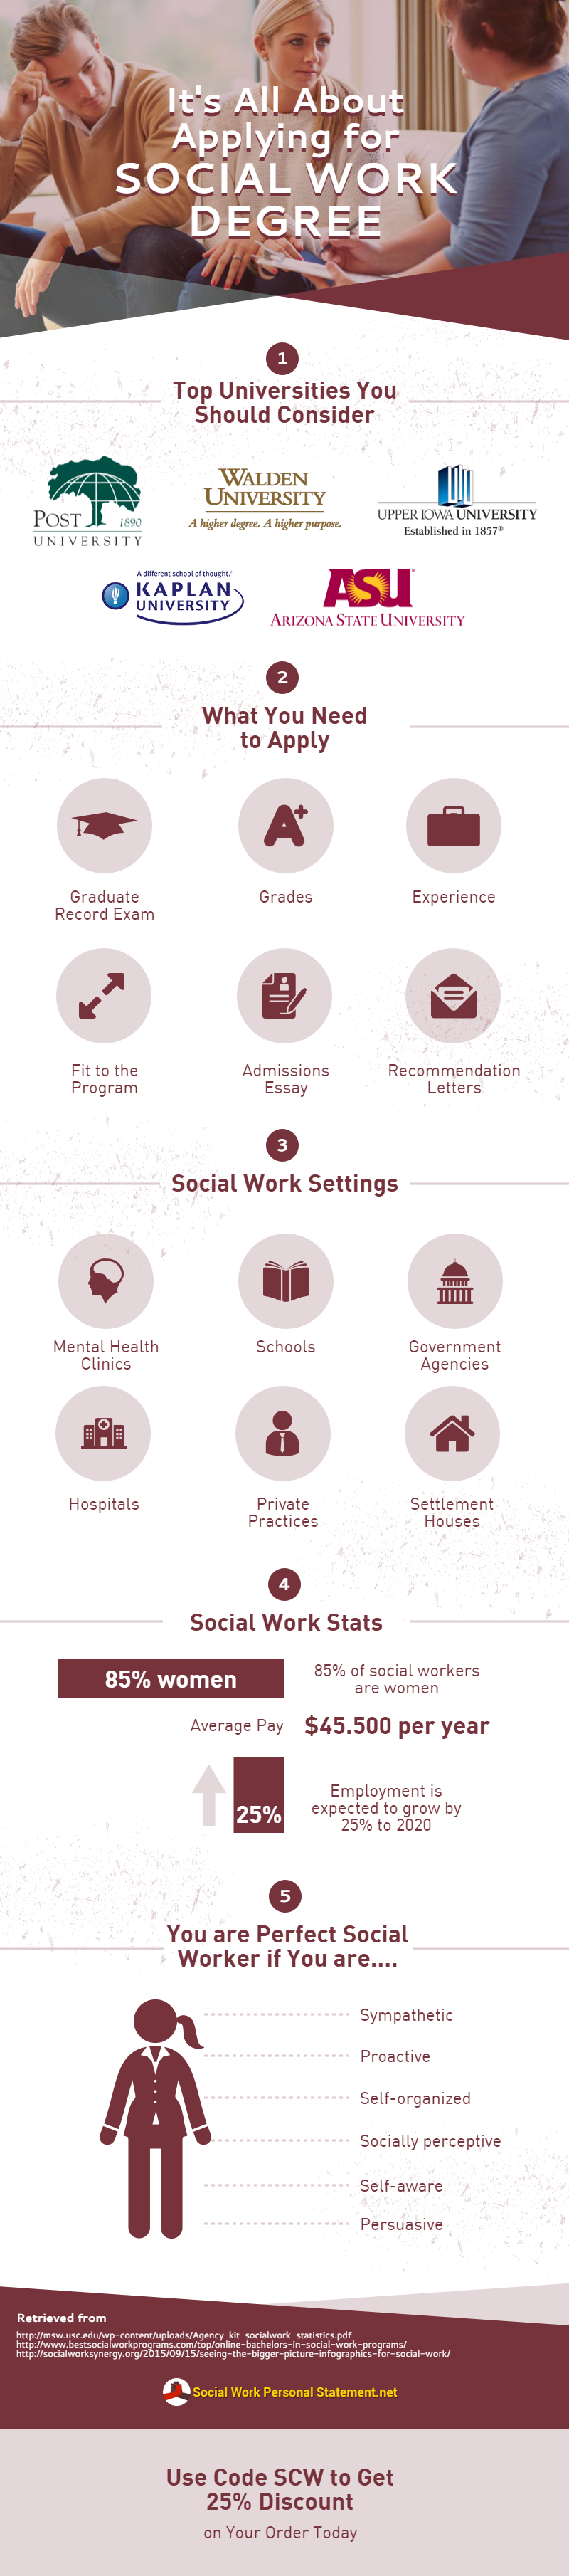 It's All About Applying for Social Work Degree